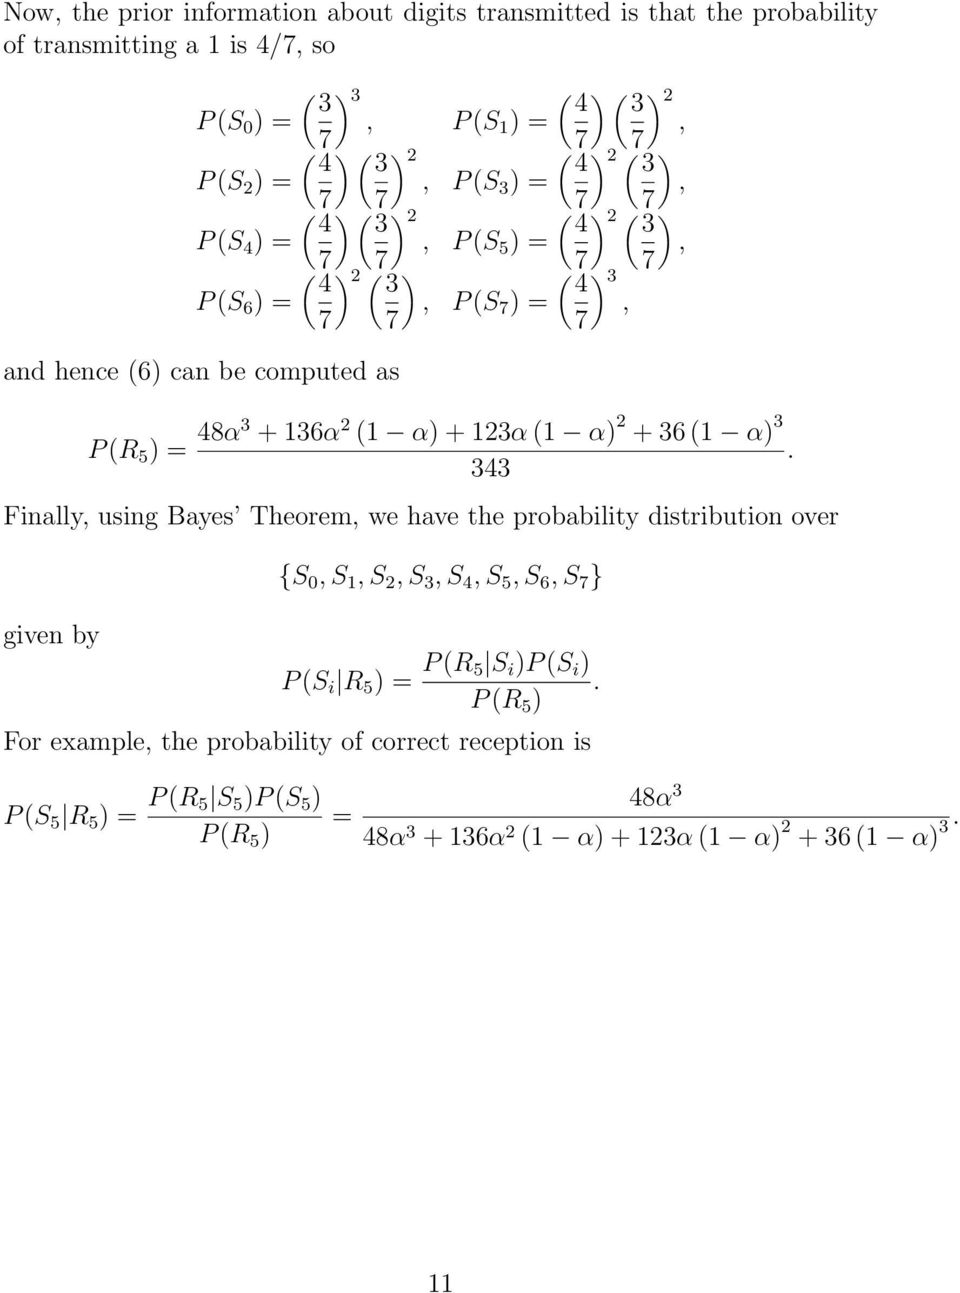 WORKED EXAMPLES 1 TOTAL PROBABILITY AND BAYES THEOREM - PDF